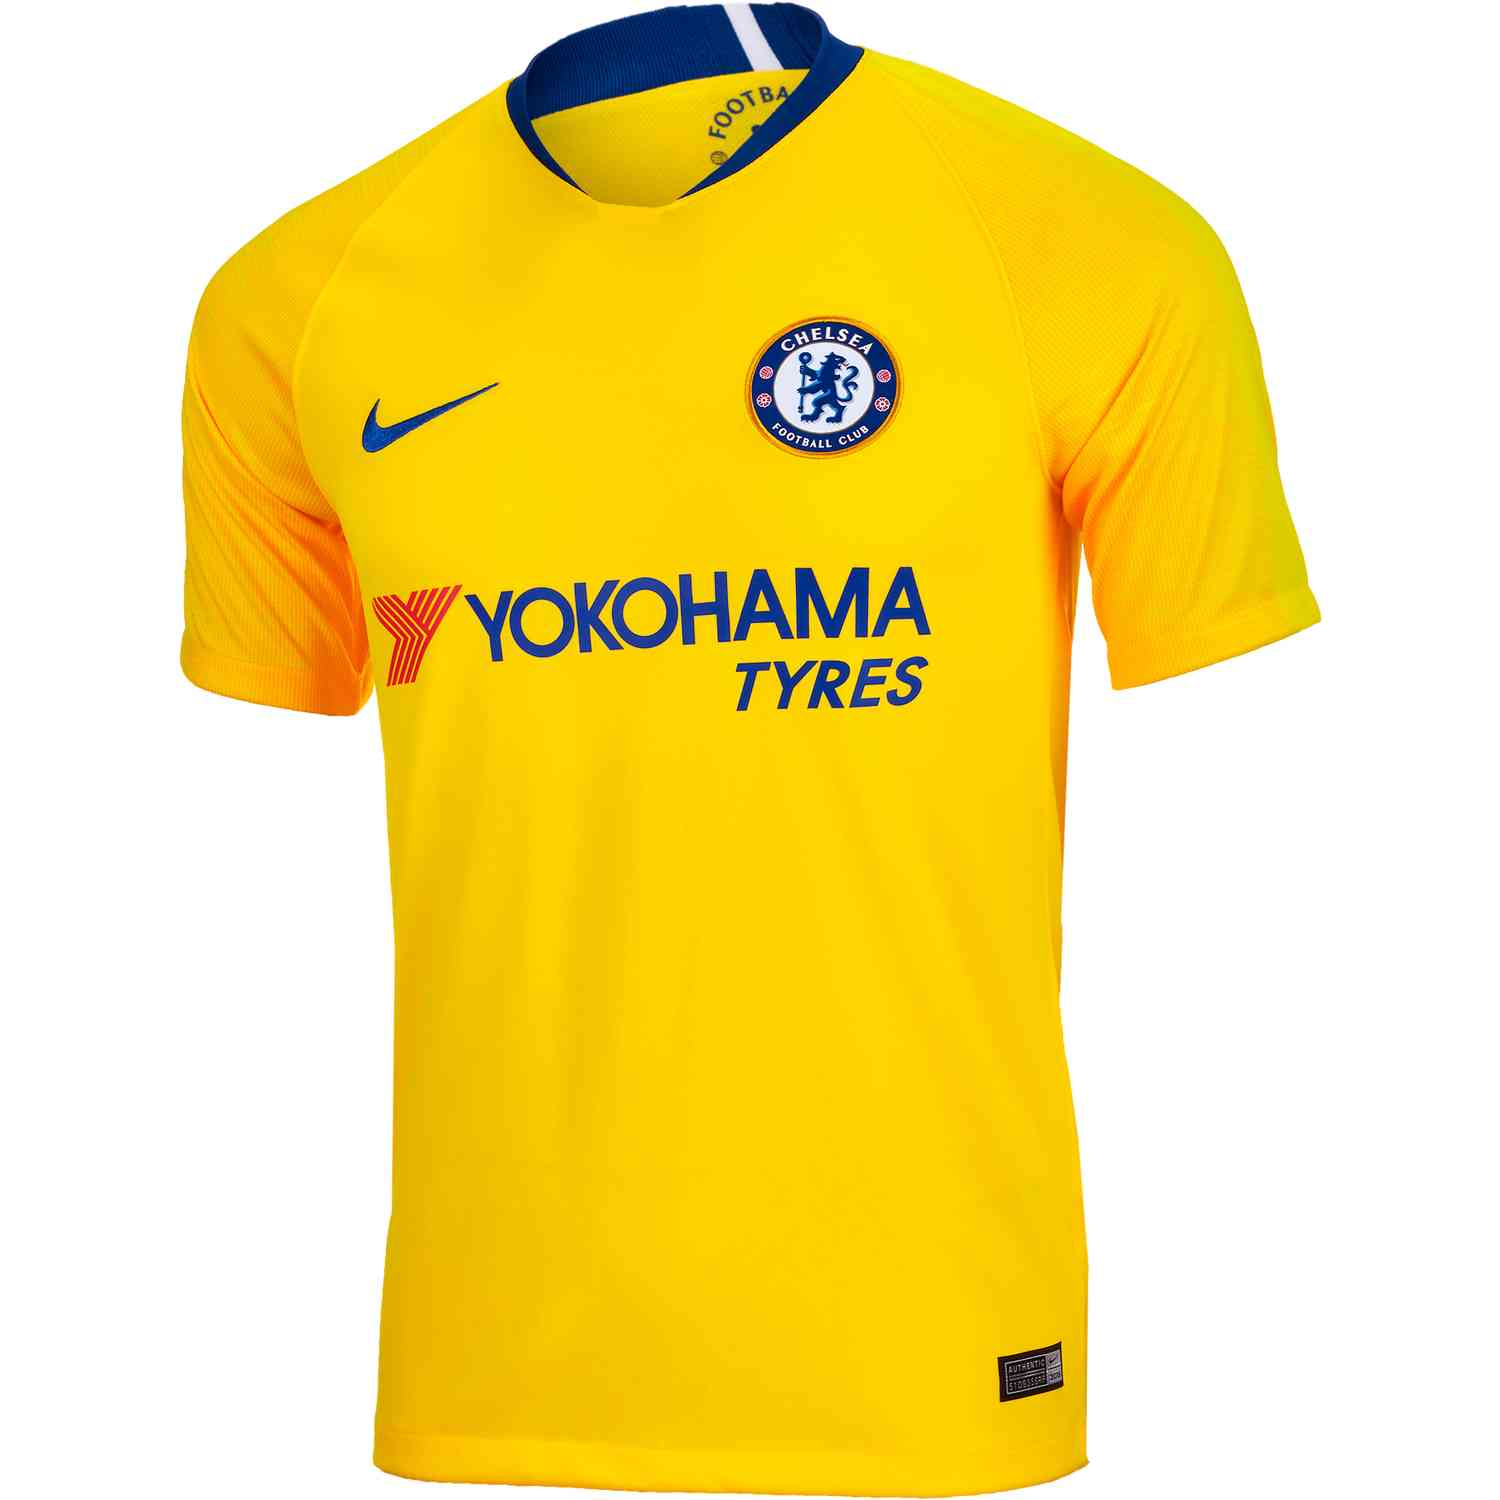 reputable site 8cc90 95800 2018/19 Nike Chelsea Away Jersey